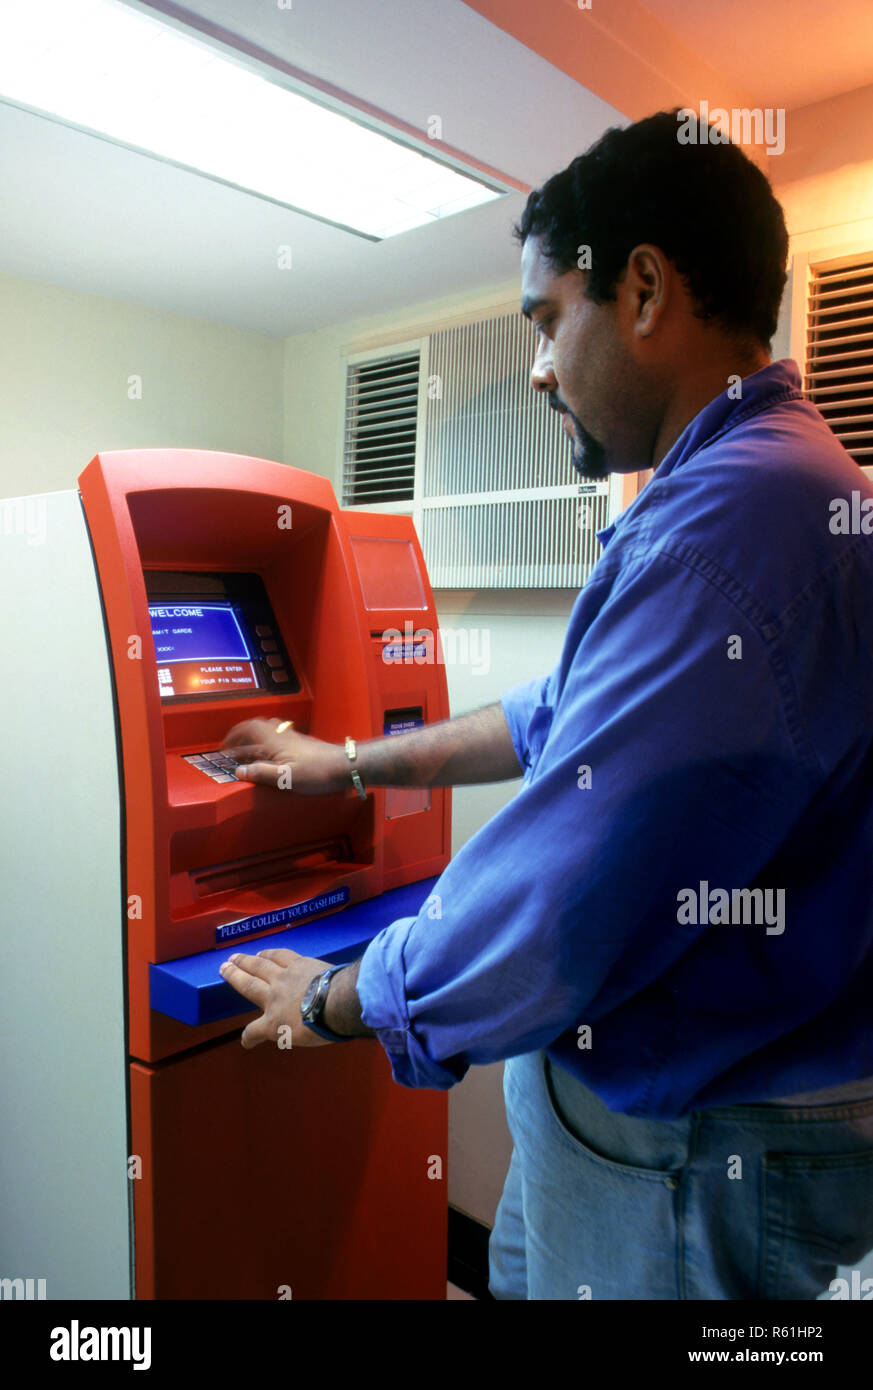 man operating Any Time Money System ATM, automated bank system - Stock Image